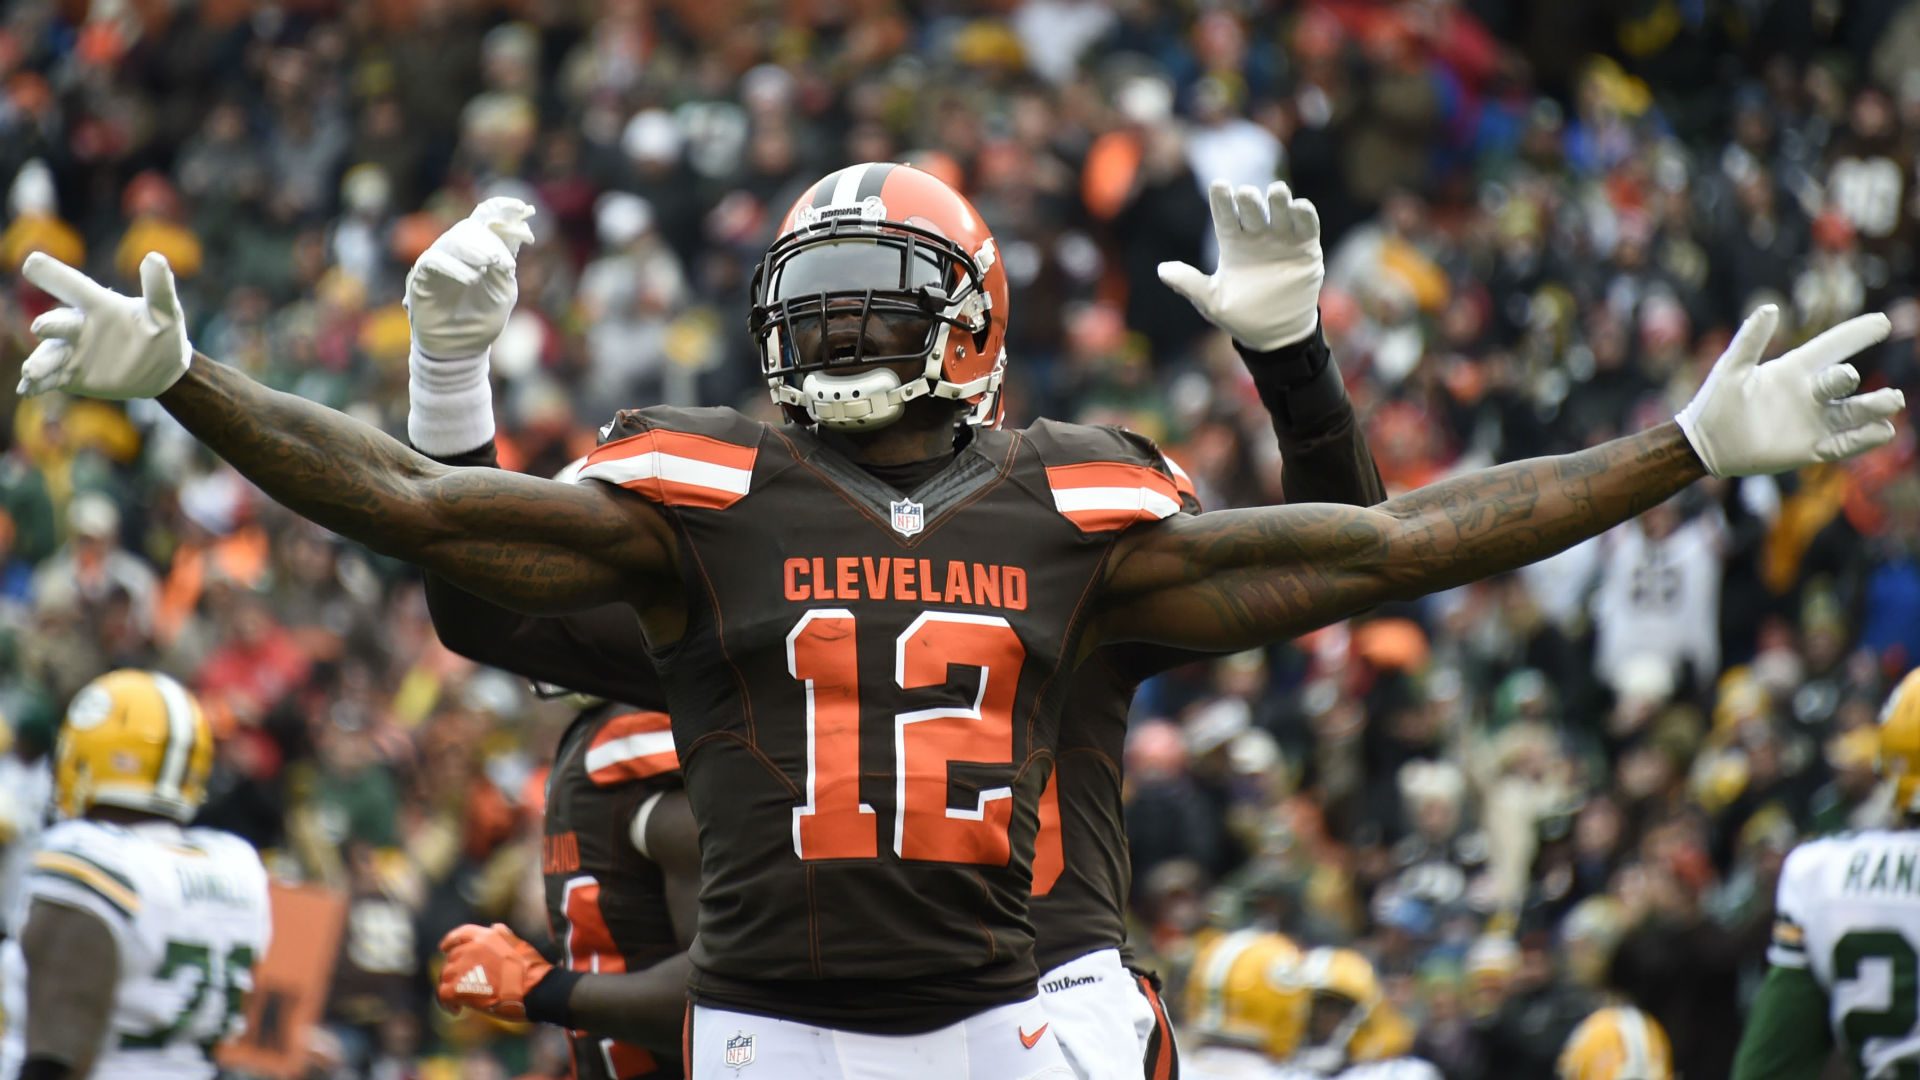 Josh-gordon-032118-getty-ftrjpg_cvm7igm9nw9h1p7qtjwiz5nig